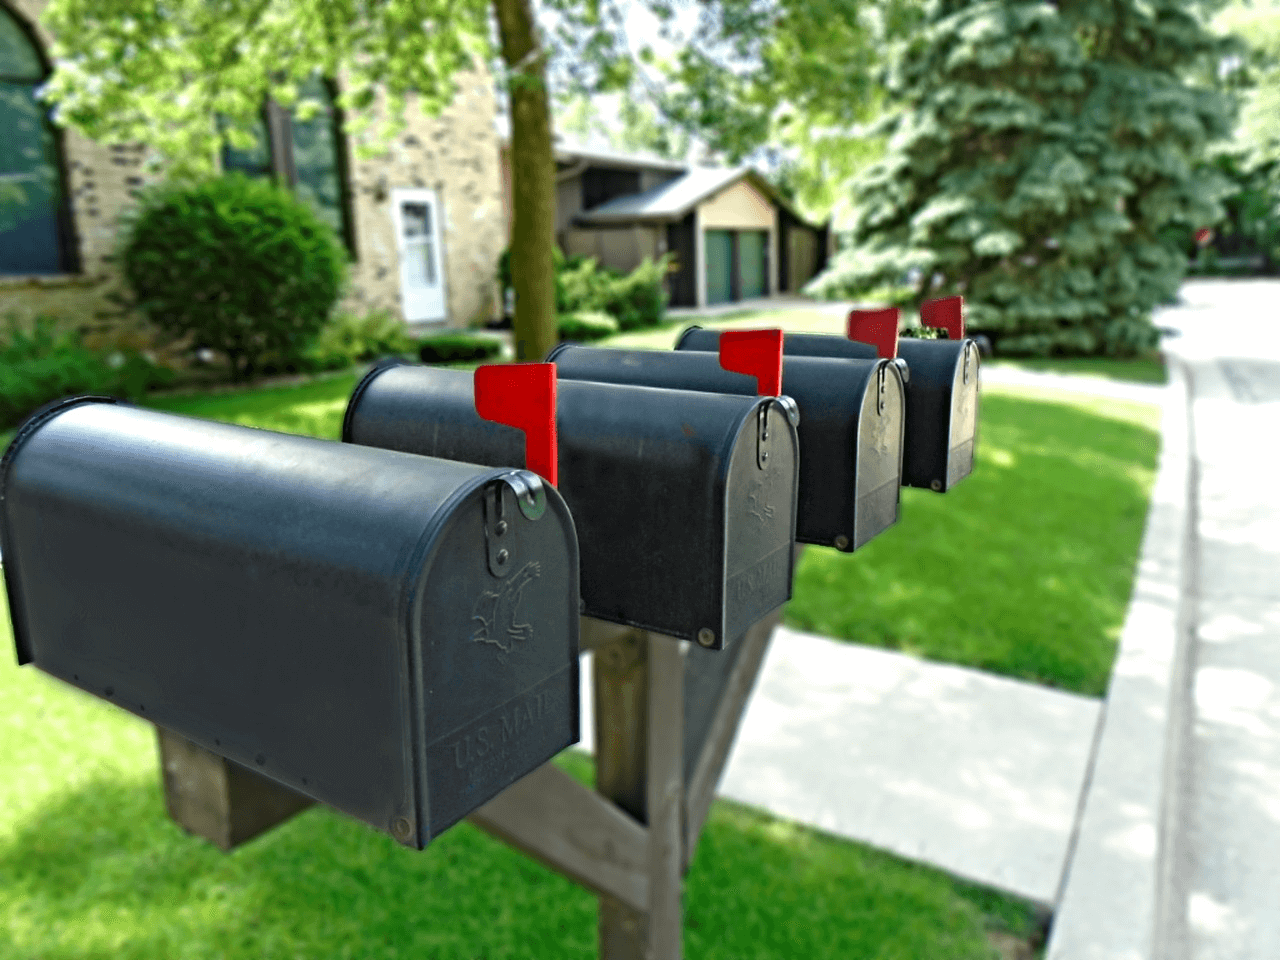 Registered agent: Mailboxes in a neighborhood